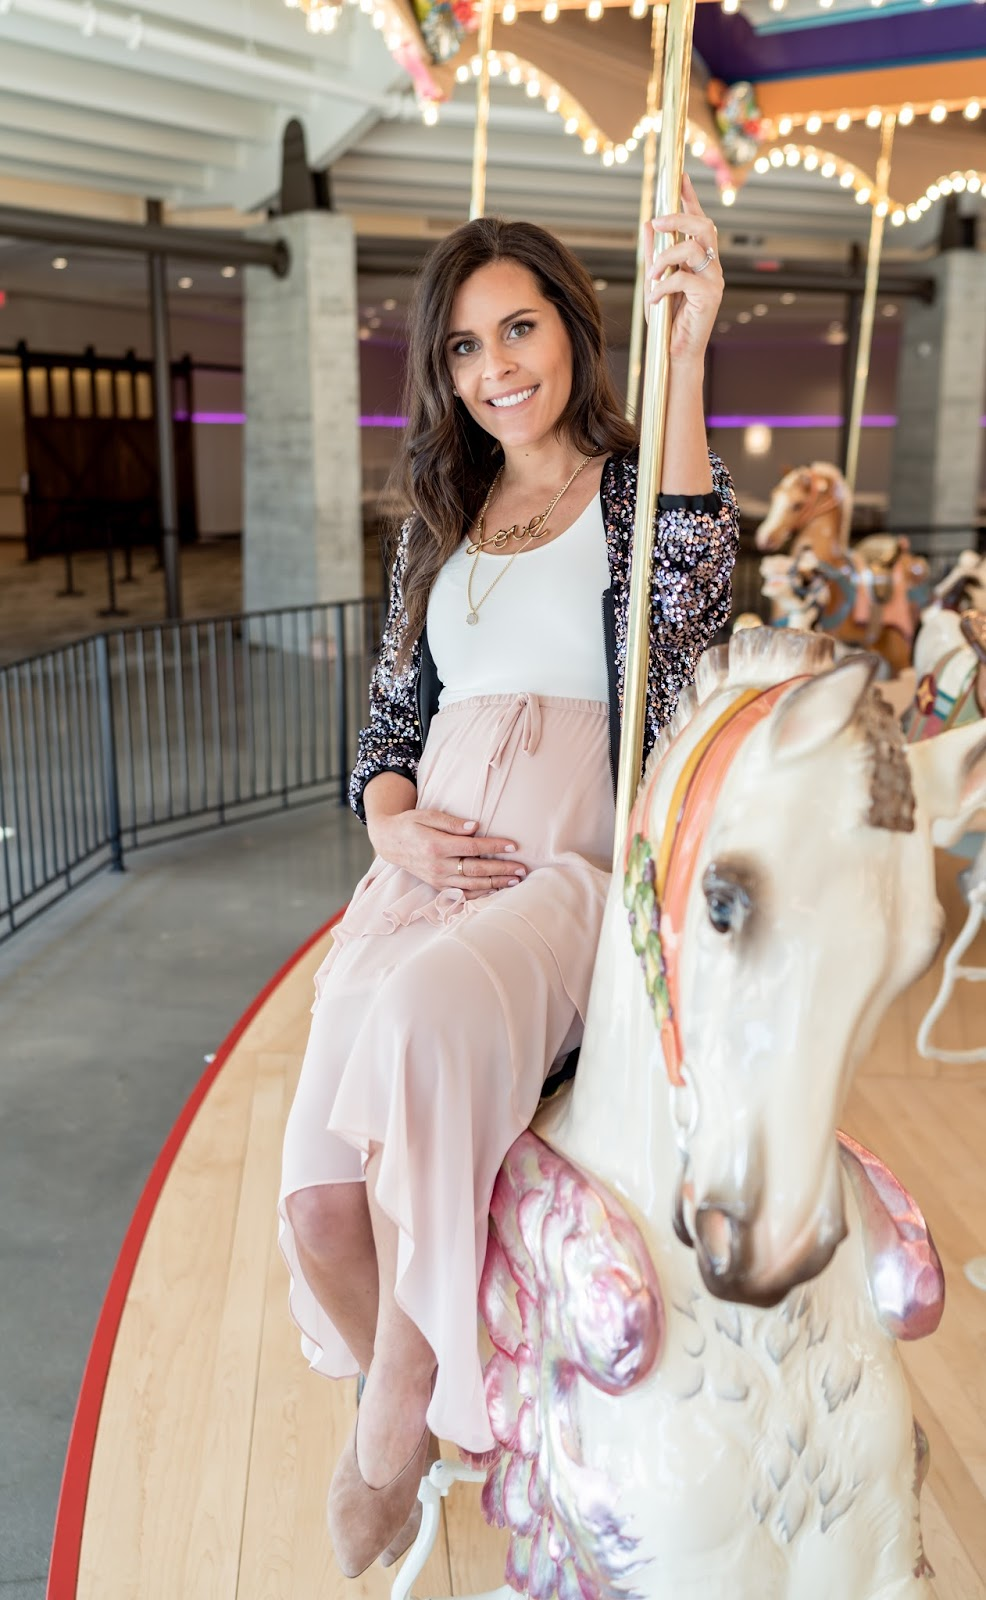 Maternity style with a flowy skirt and sequin jacket